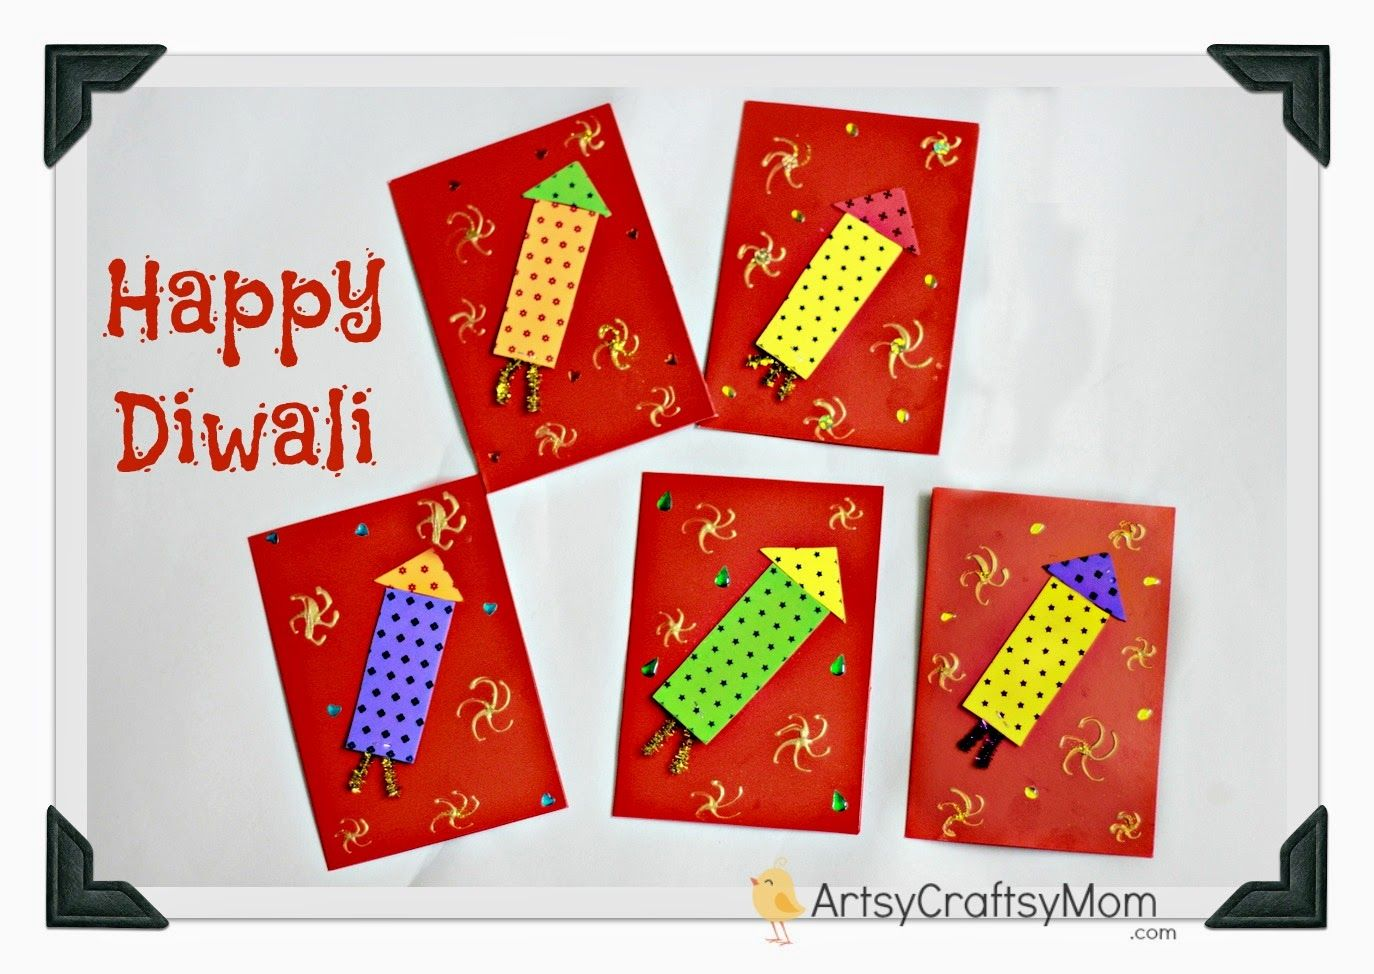 Diwali Greeting Card Making Ideas Part - 47: Diwali+Cards+2013 | 15+ Diwali Card Making Ideas Diwali Dhamaka | India